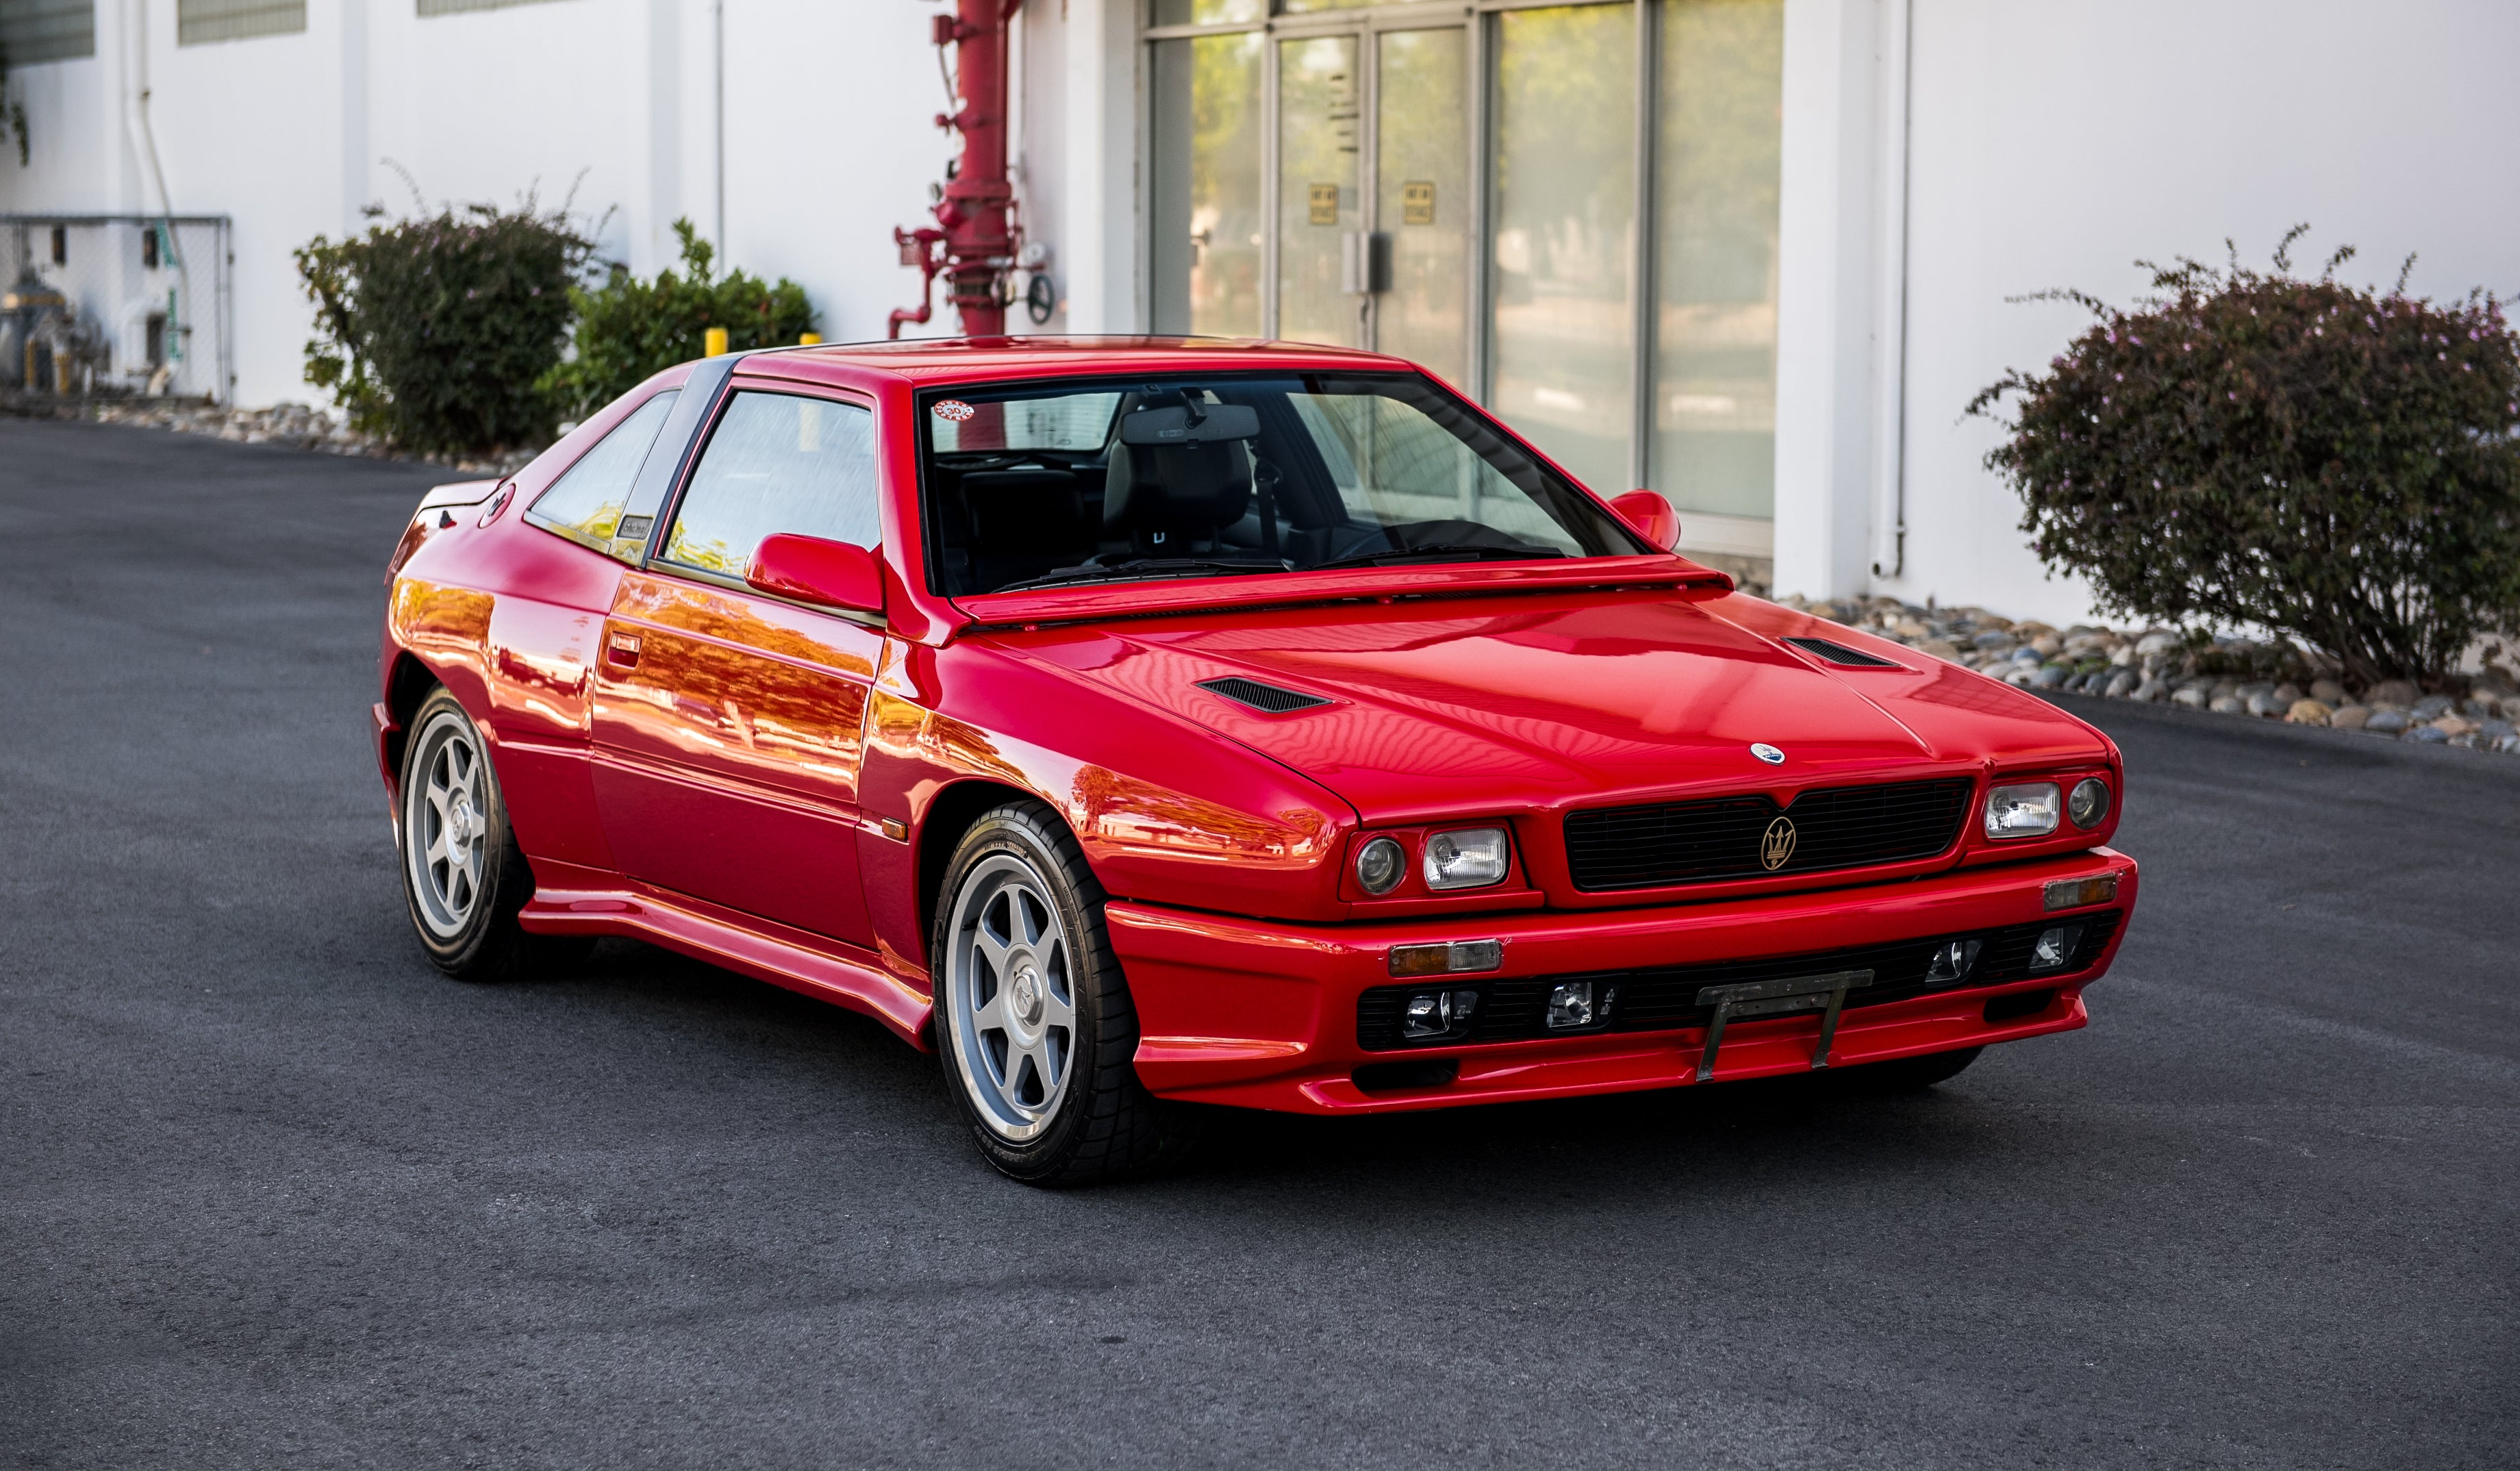 The Maserati Shamal is A Whirlwind of a Car